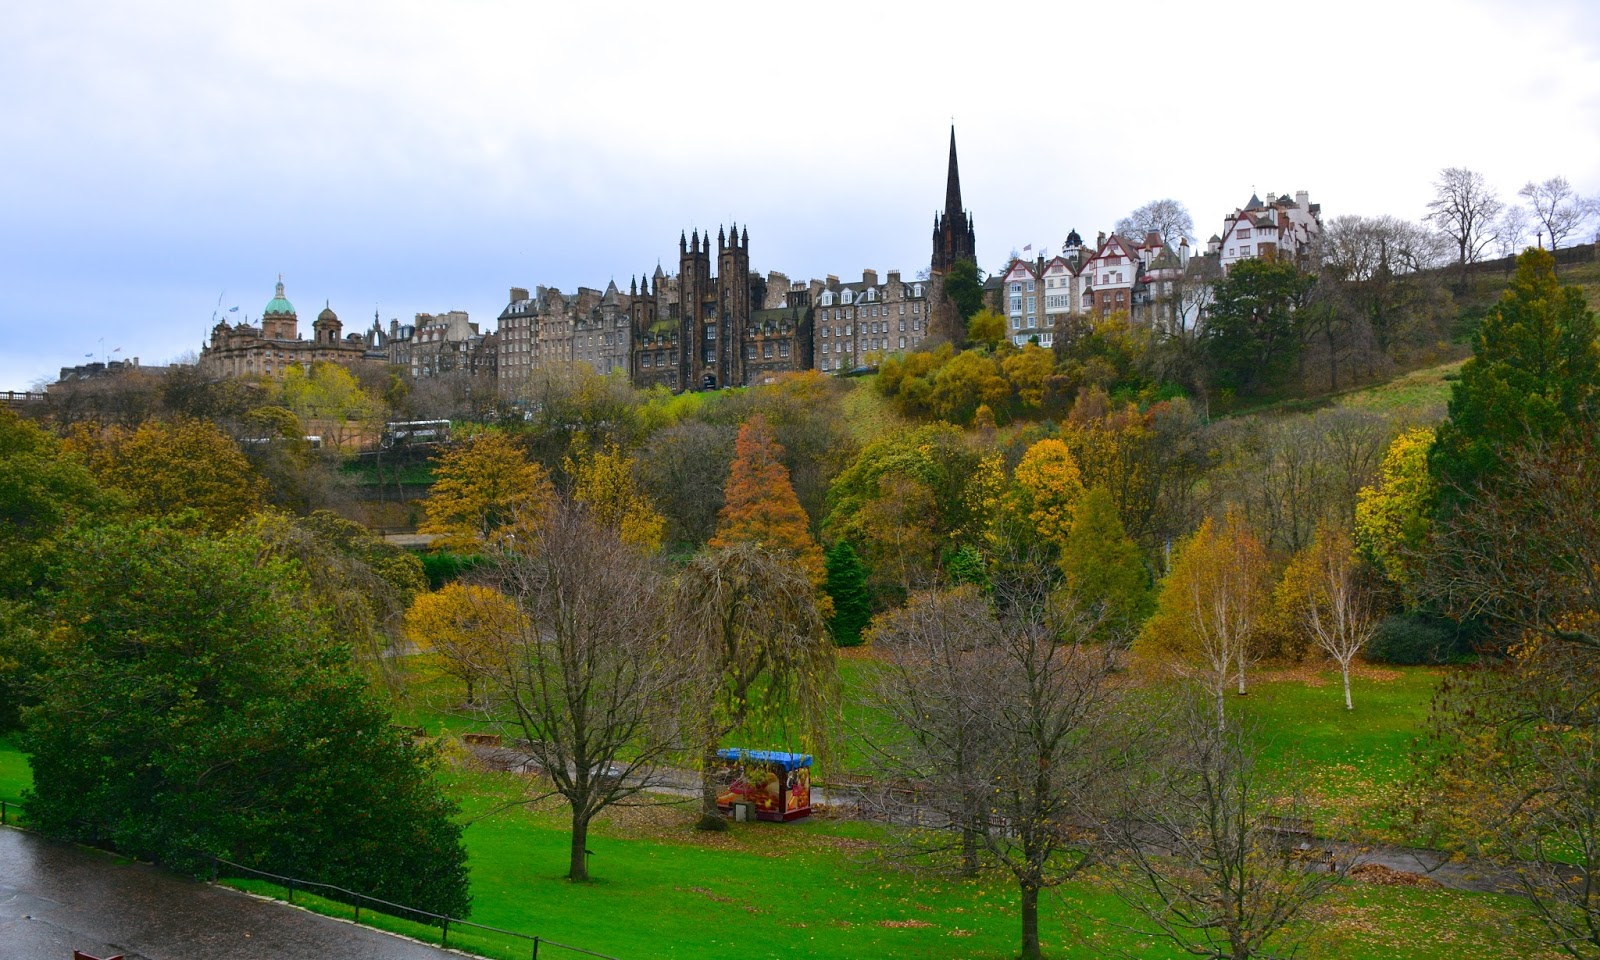 autumn splendor in Princes Street Gardens in Edinburgh